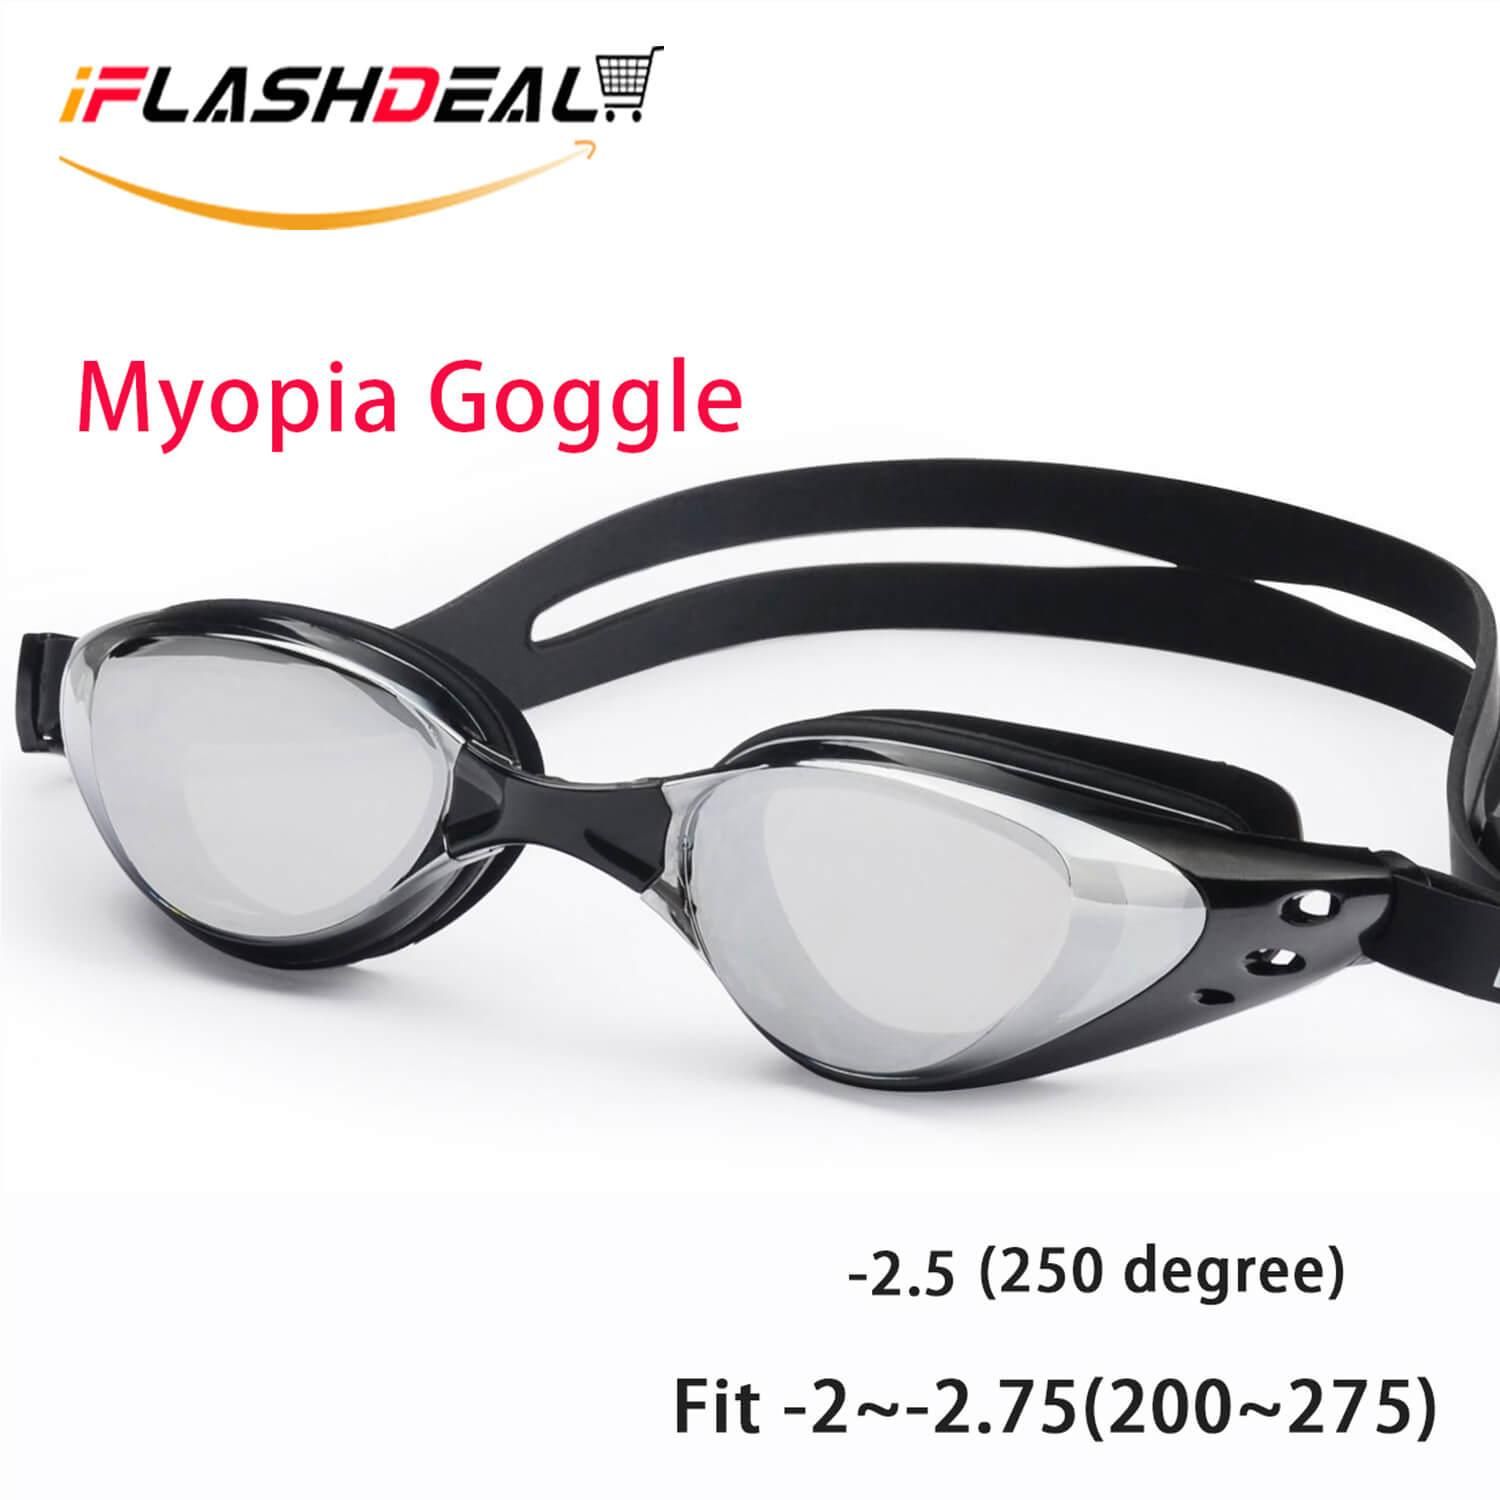 6c8a38d8c115 iFlashDeal Myopia Swim Goggles Swimming Goggles No Leaking Anti Fog UV  Protection Suit for -2